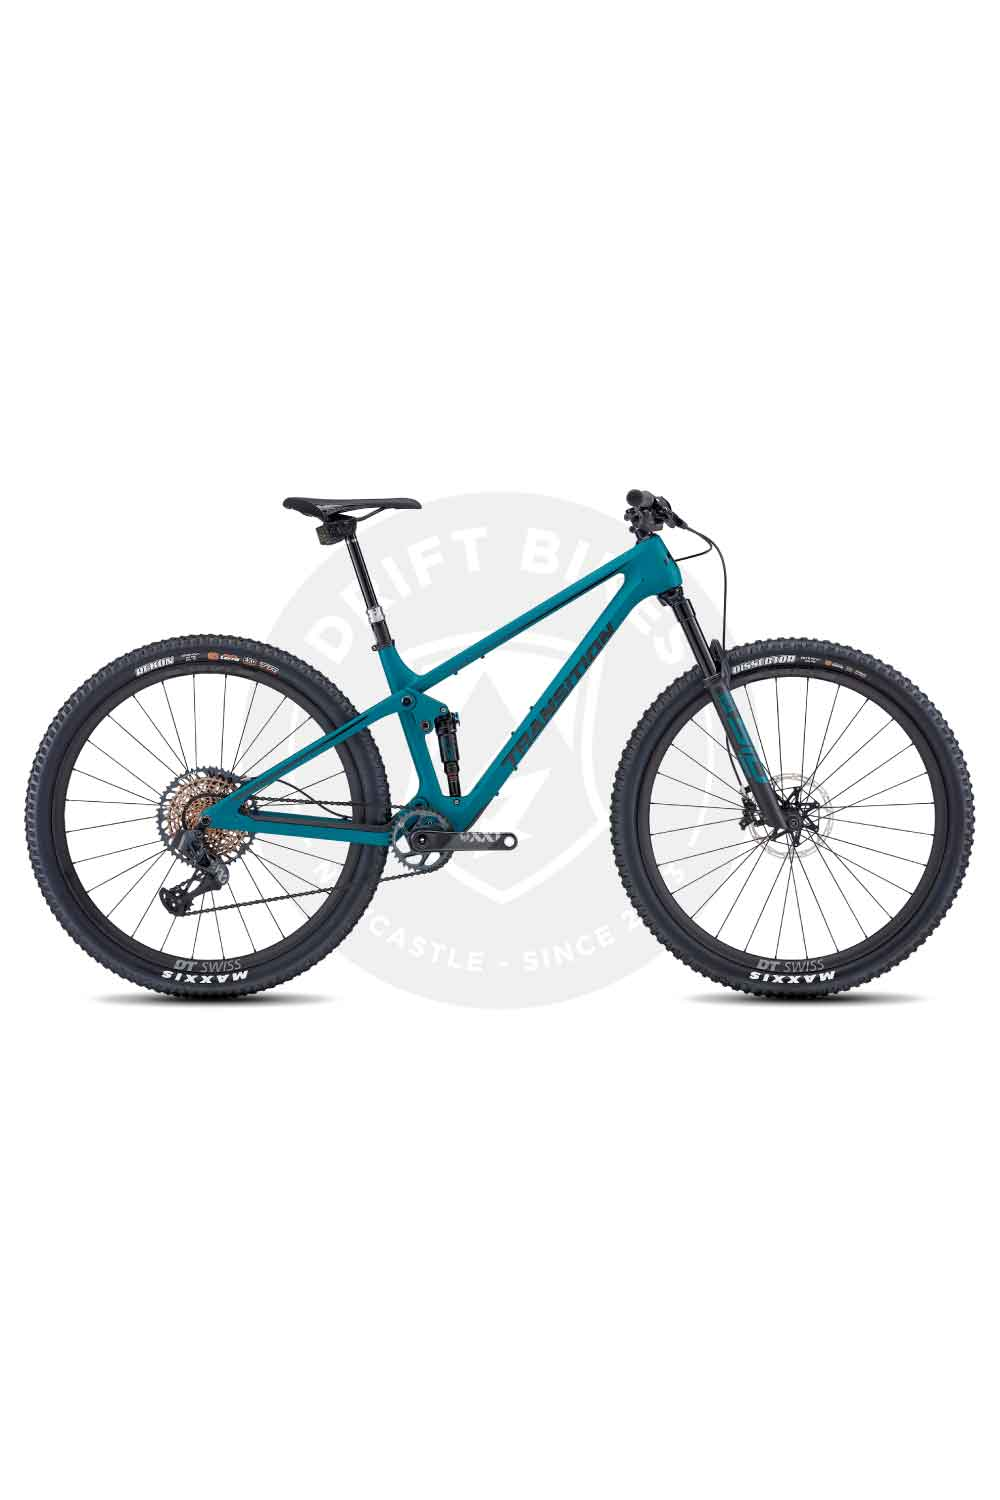 Transition SPUR Carbon AXS XX1 MTB